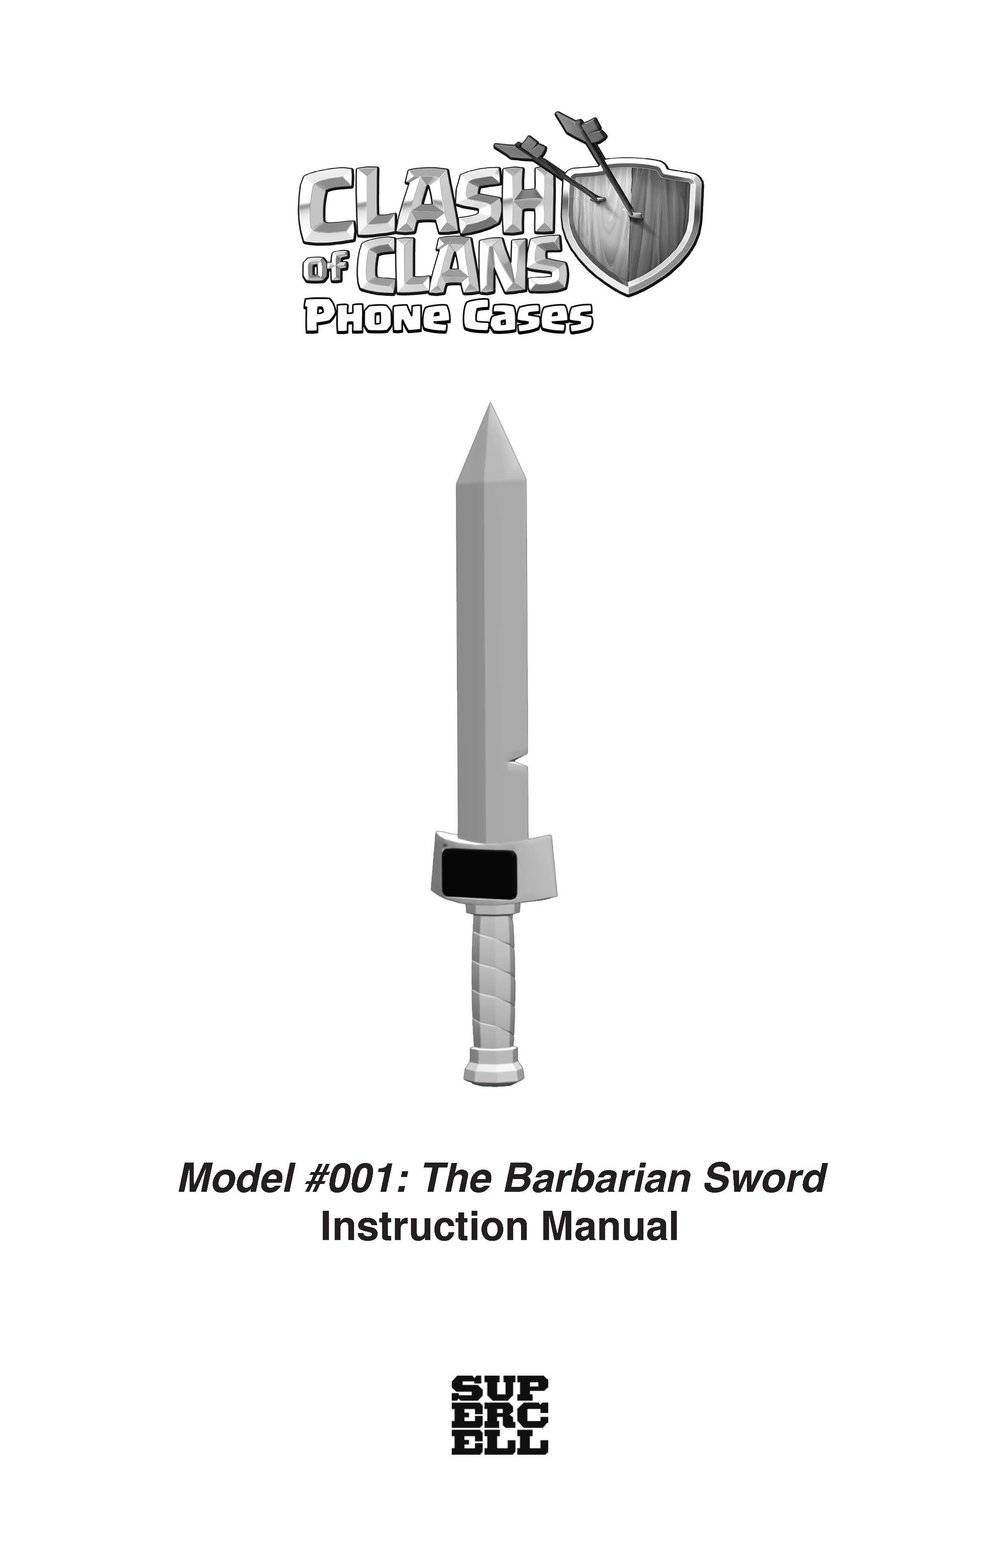 Clash-of-Clans-Phone-Cases-Instruction-Manual-Model-001-The-Barbarian-Sword_Page_1.jpg